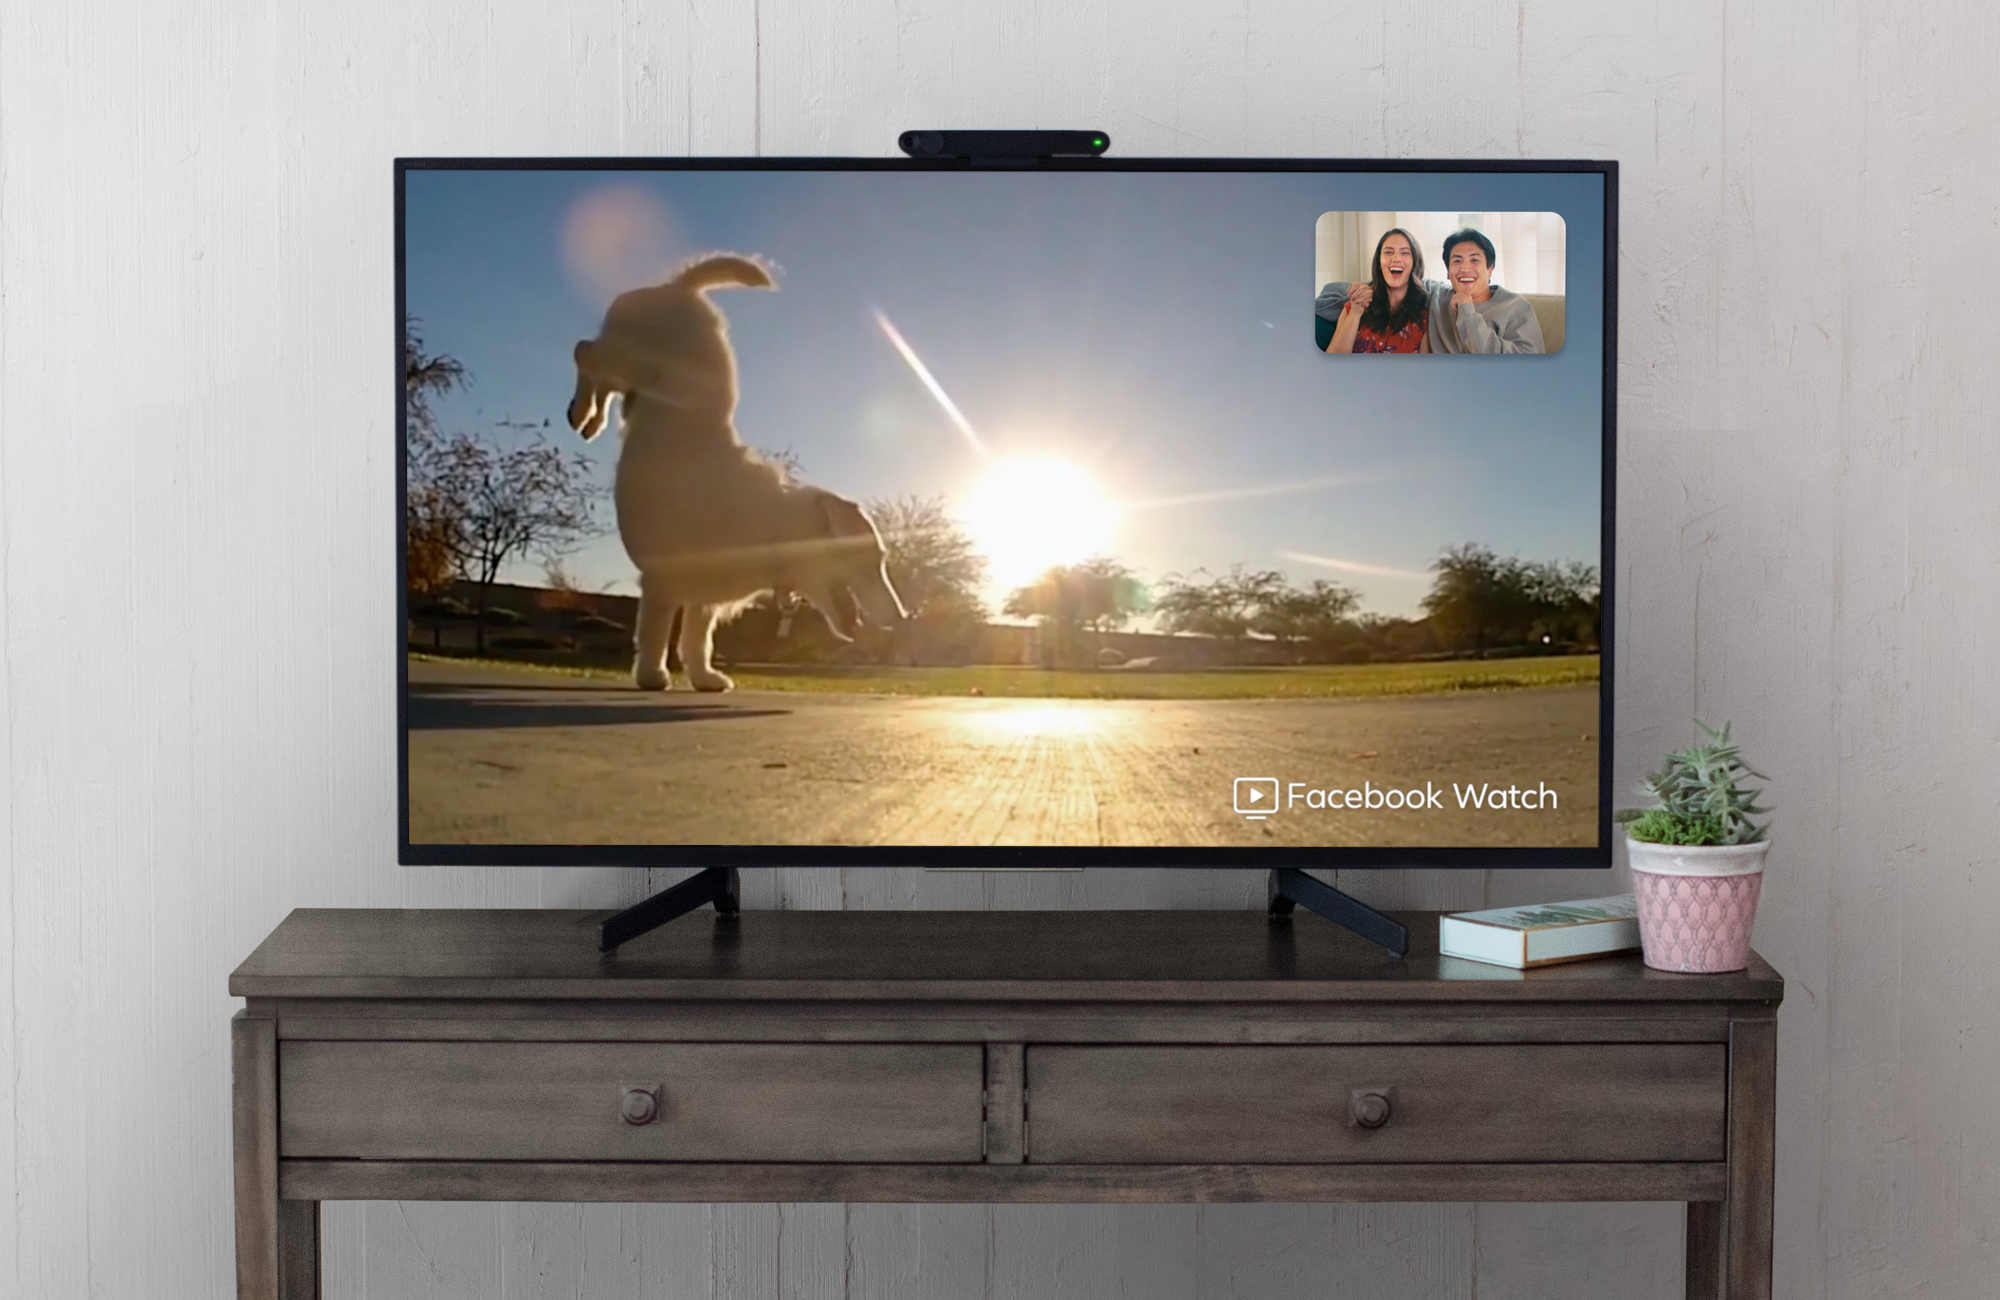 A flat-screen TV running Facebook's Portal device shows a picture of a dog and and an inset of a couple sitting on a couch.